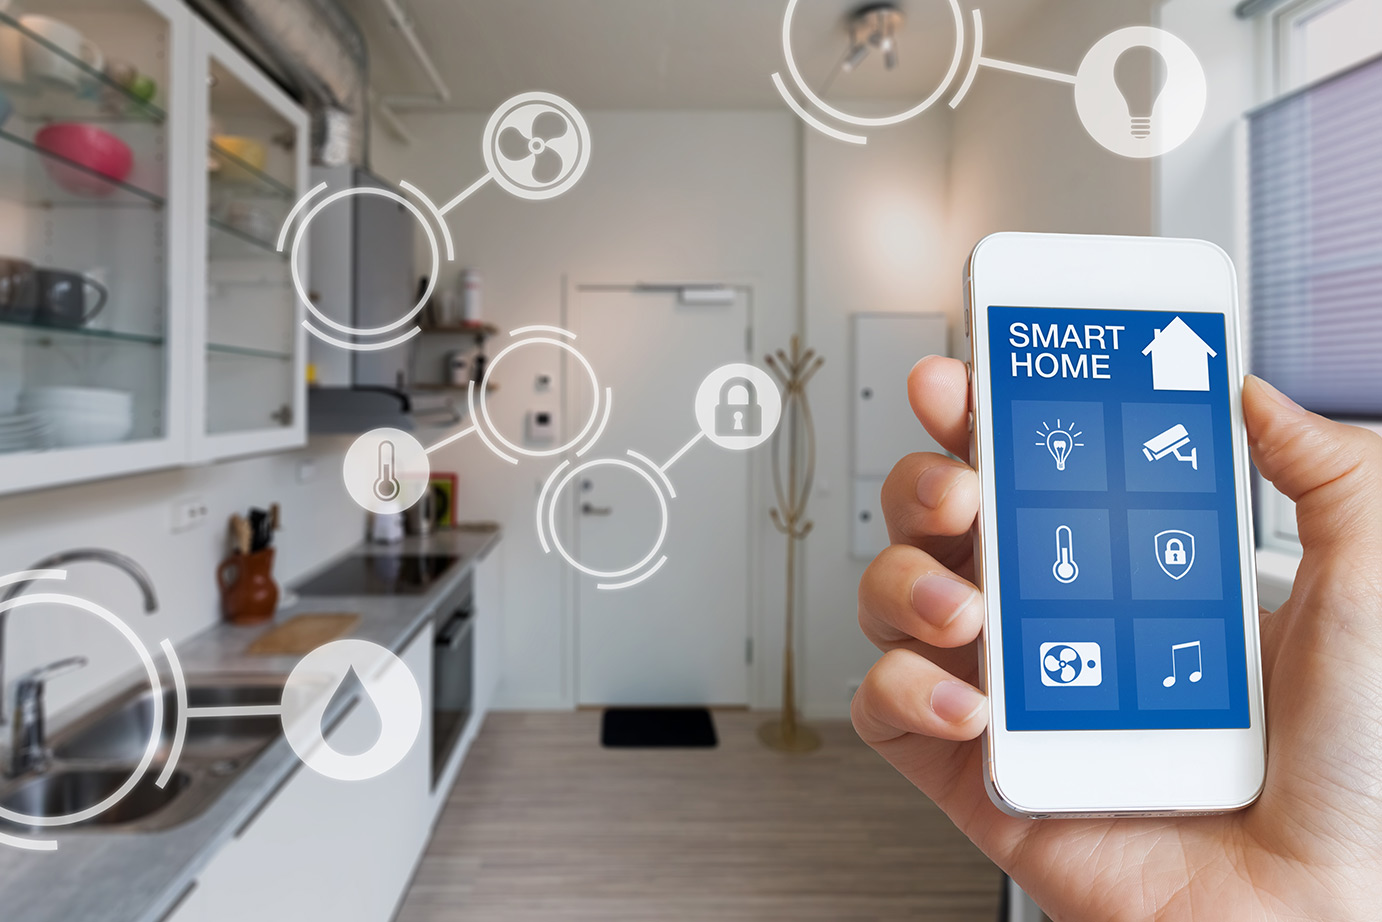 Smart phone in home, IoT